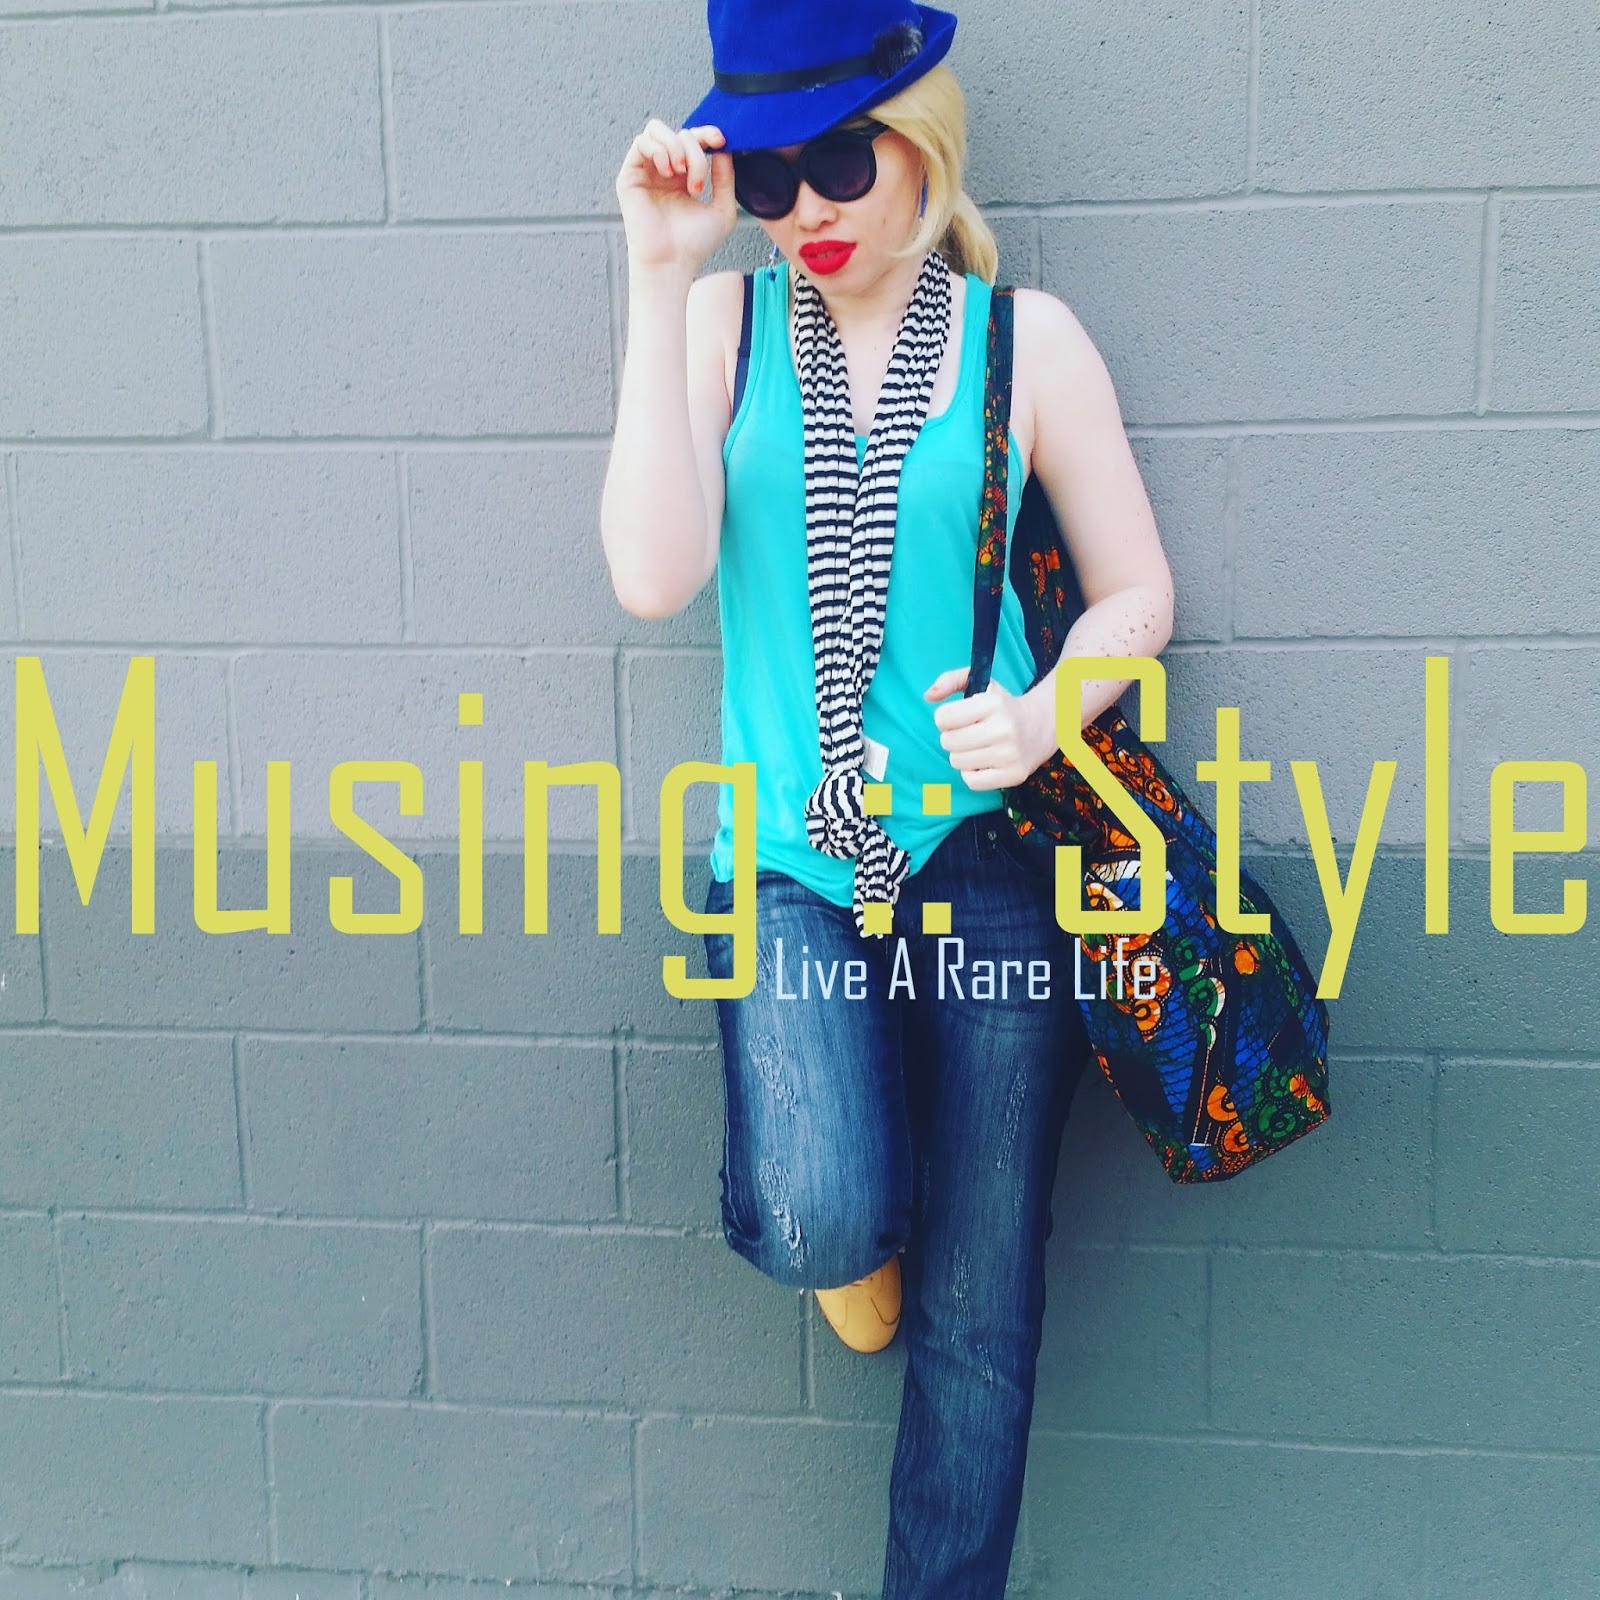 Musing :: Style : Live A Rare Life